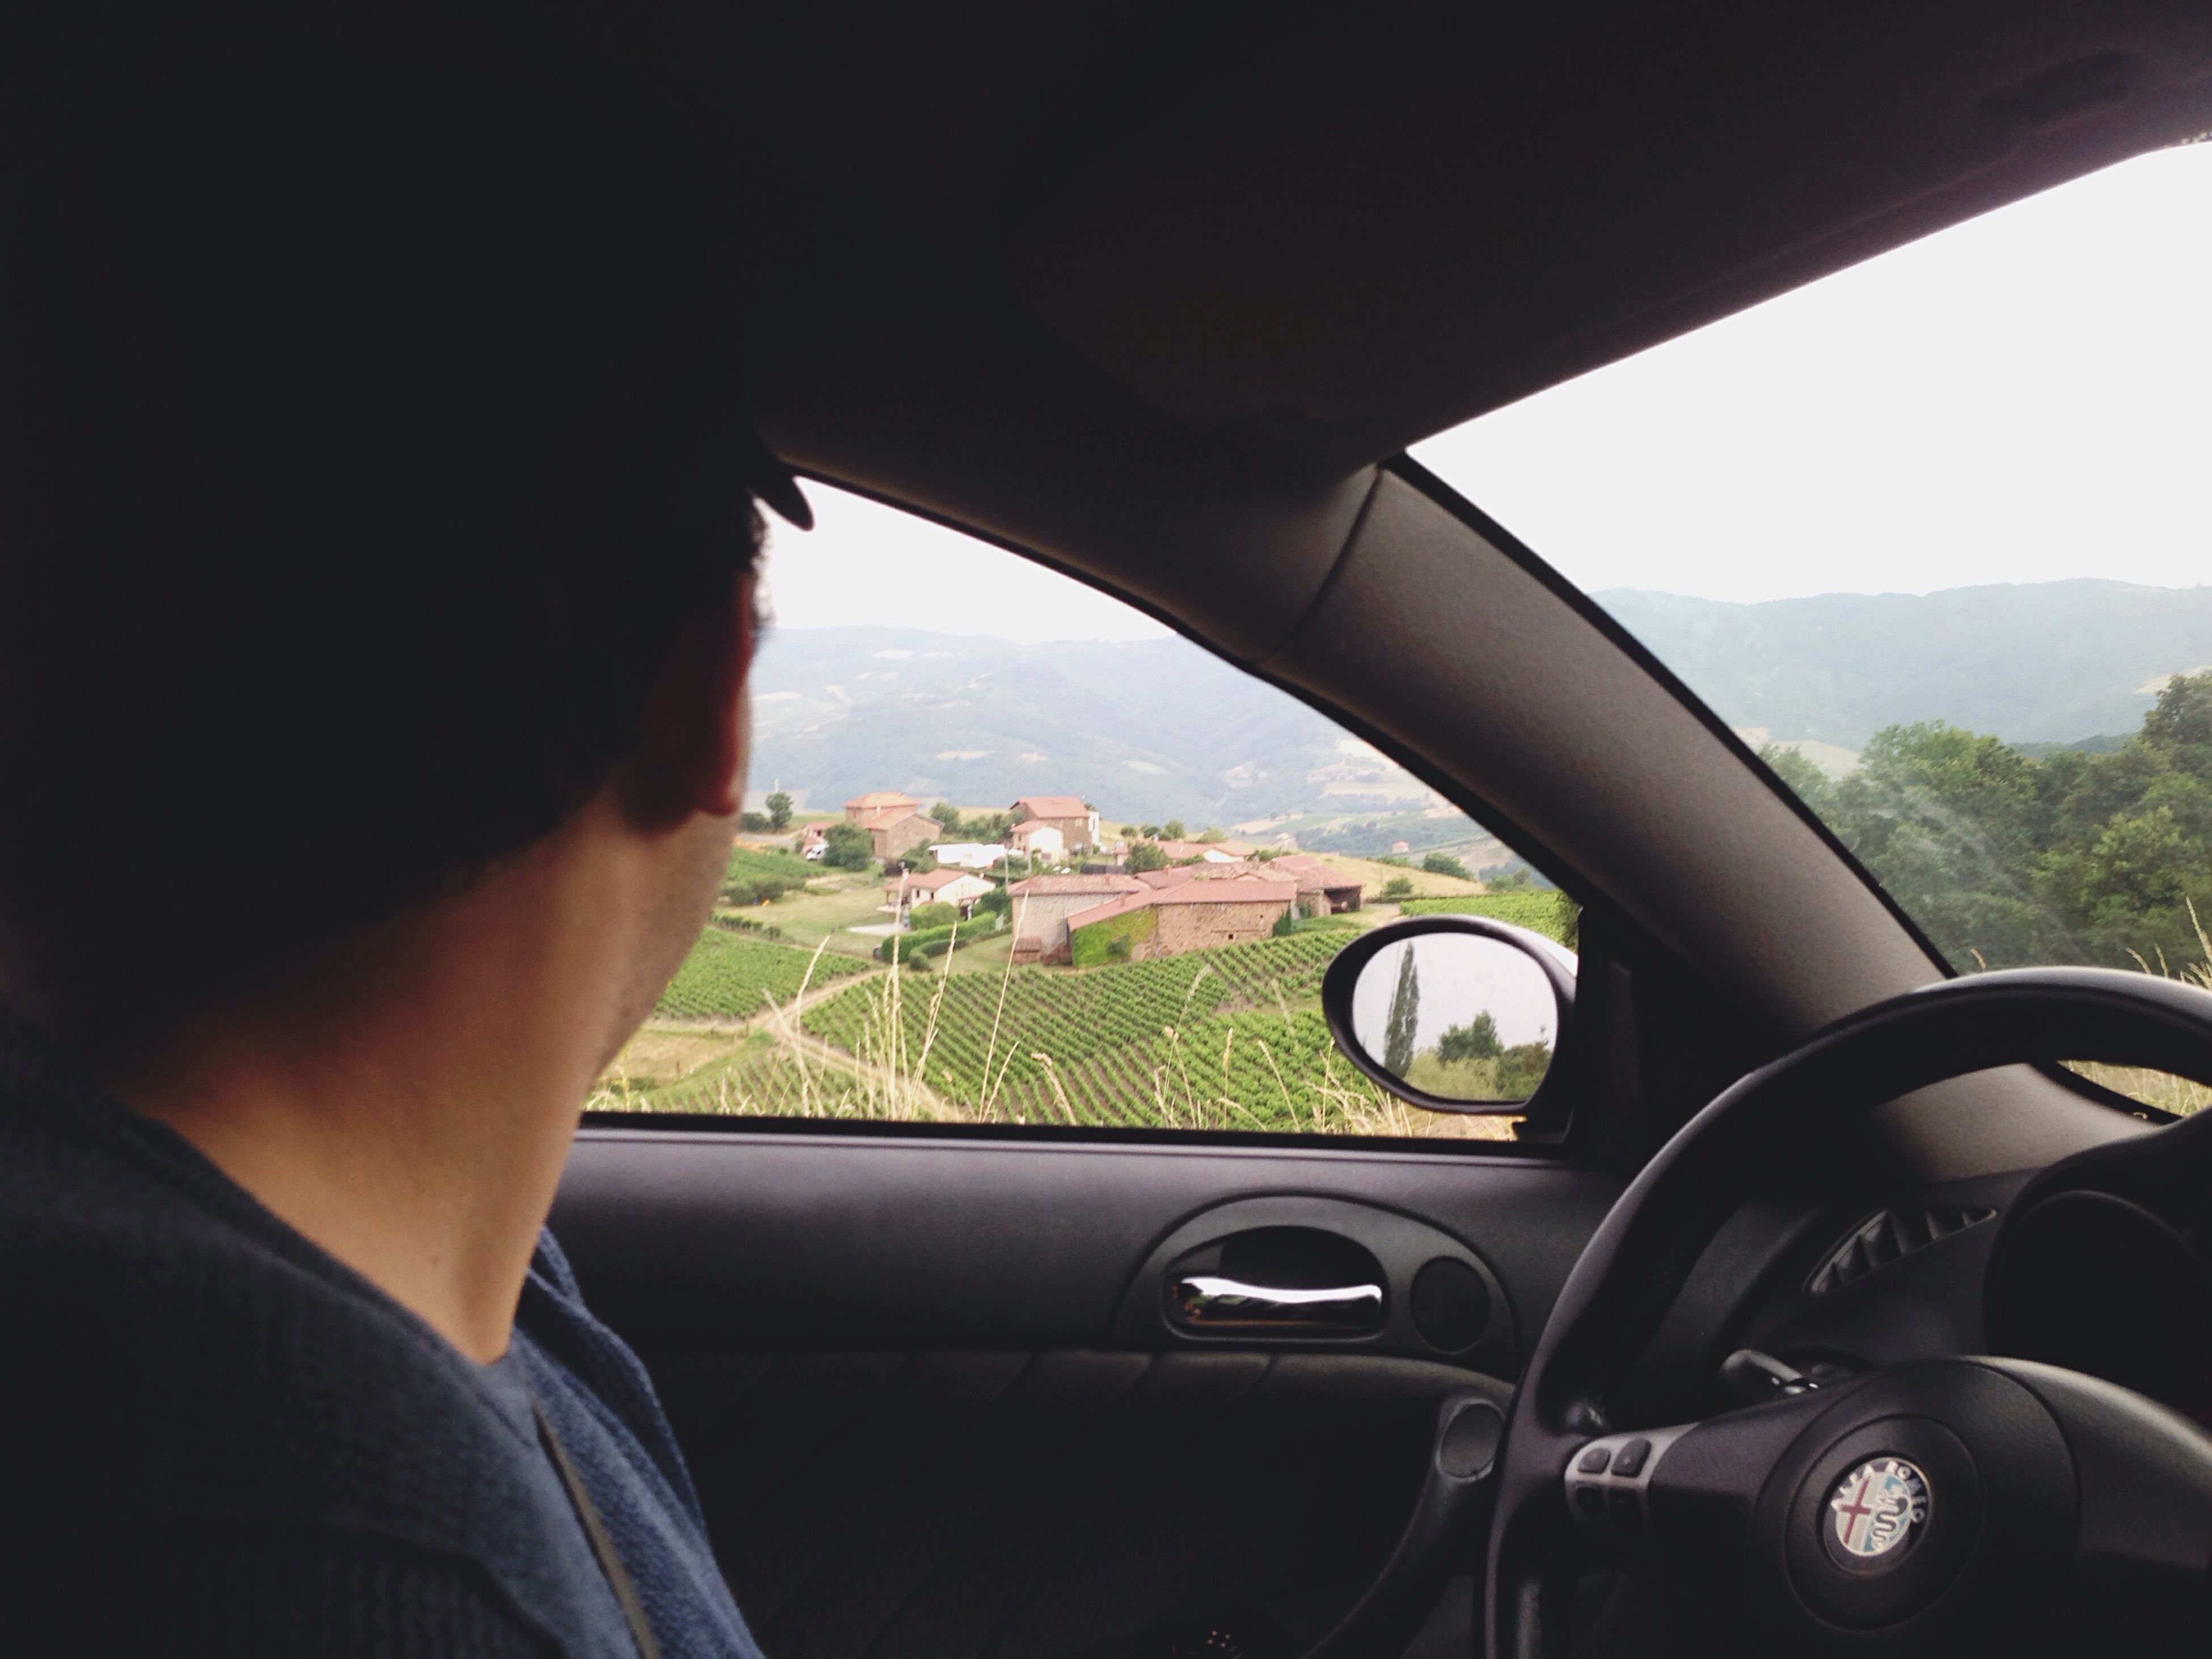 transportation, mode of transport, land vehicle, vehicle interior, car interior, part of, side-view mirror, sky, cropped, driving, landscape, journey, lifestyles, rear-view mirror, windshield, personal perspective, leisure activity, steering wheel, mountain, nature, close-up, day